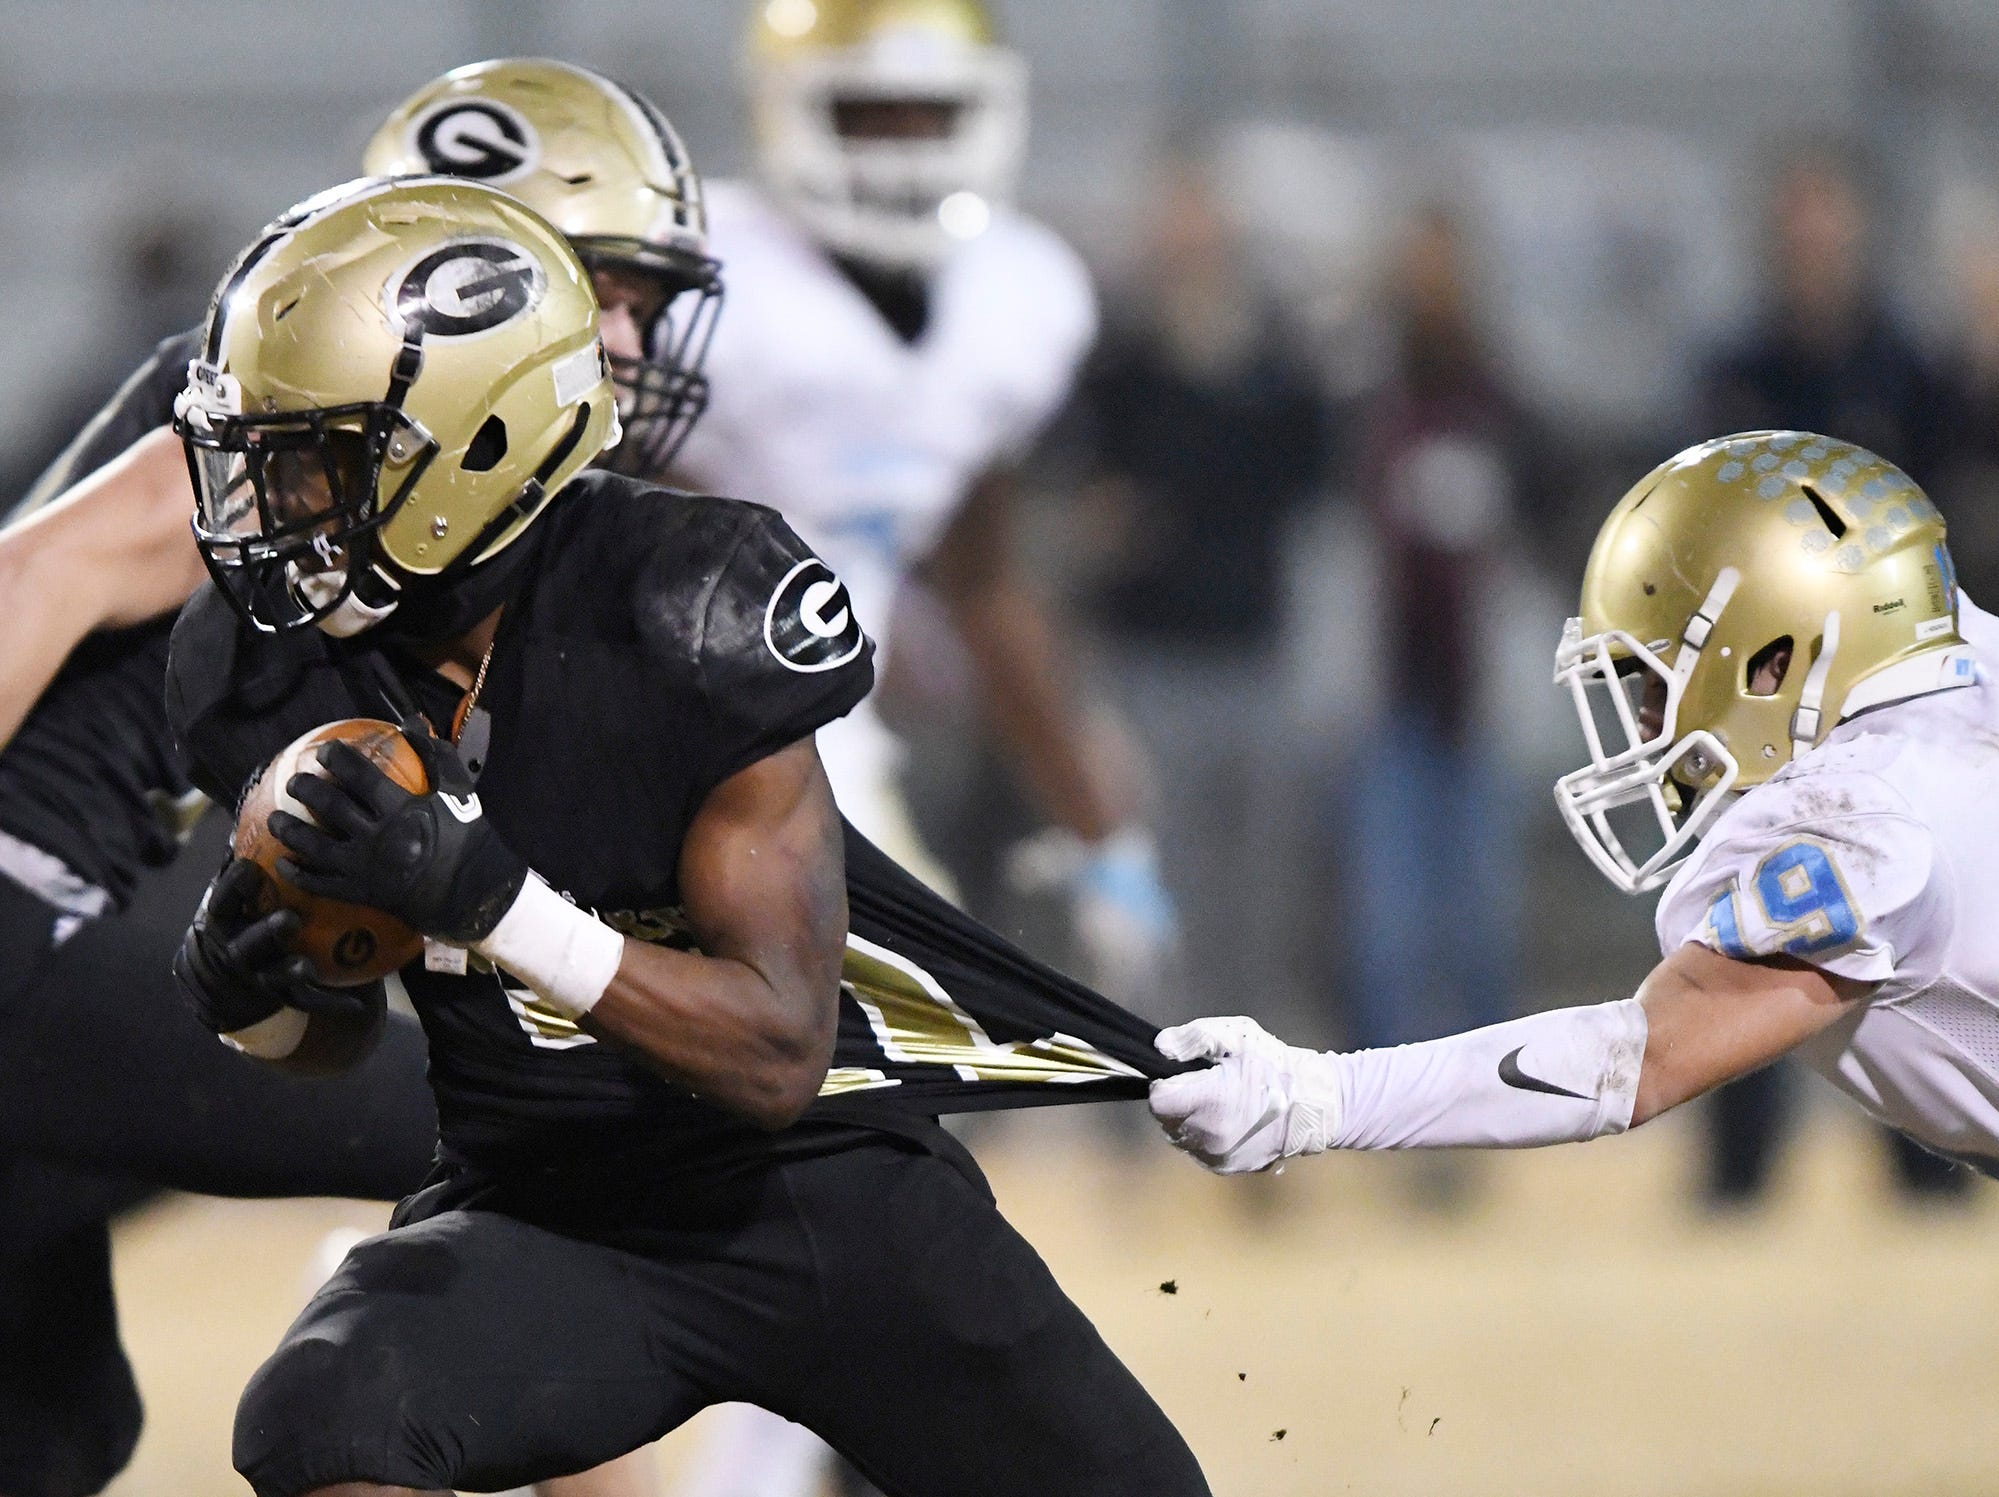 Daniel's Jacob Hendricks (19) hangs on to Greer's Dre Williams (22) in the class AAAA upstate championship Friday, November 30, 2018 at Greer's Dooley Field.